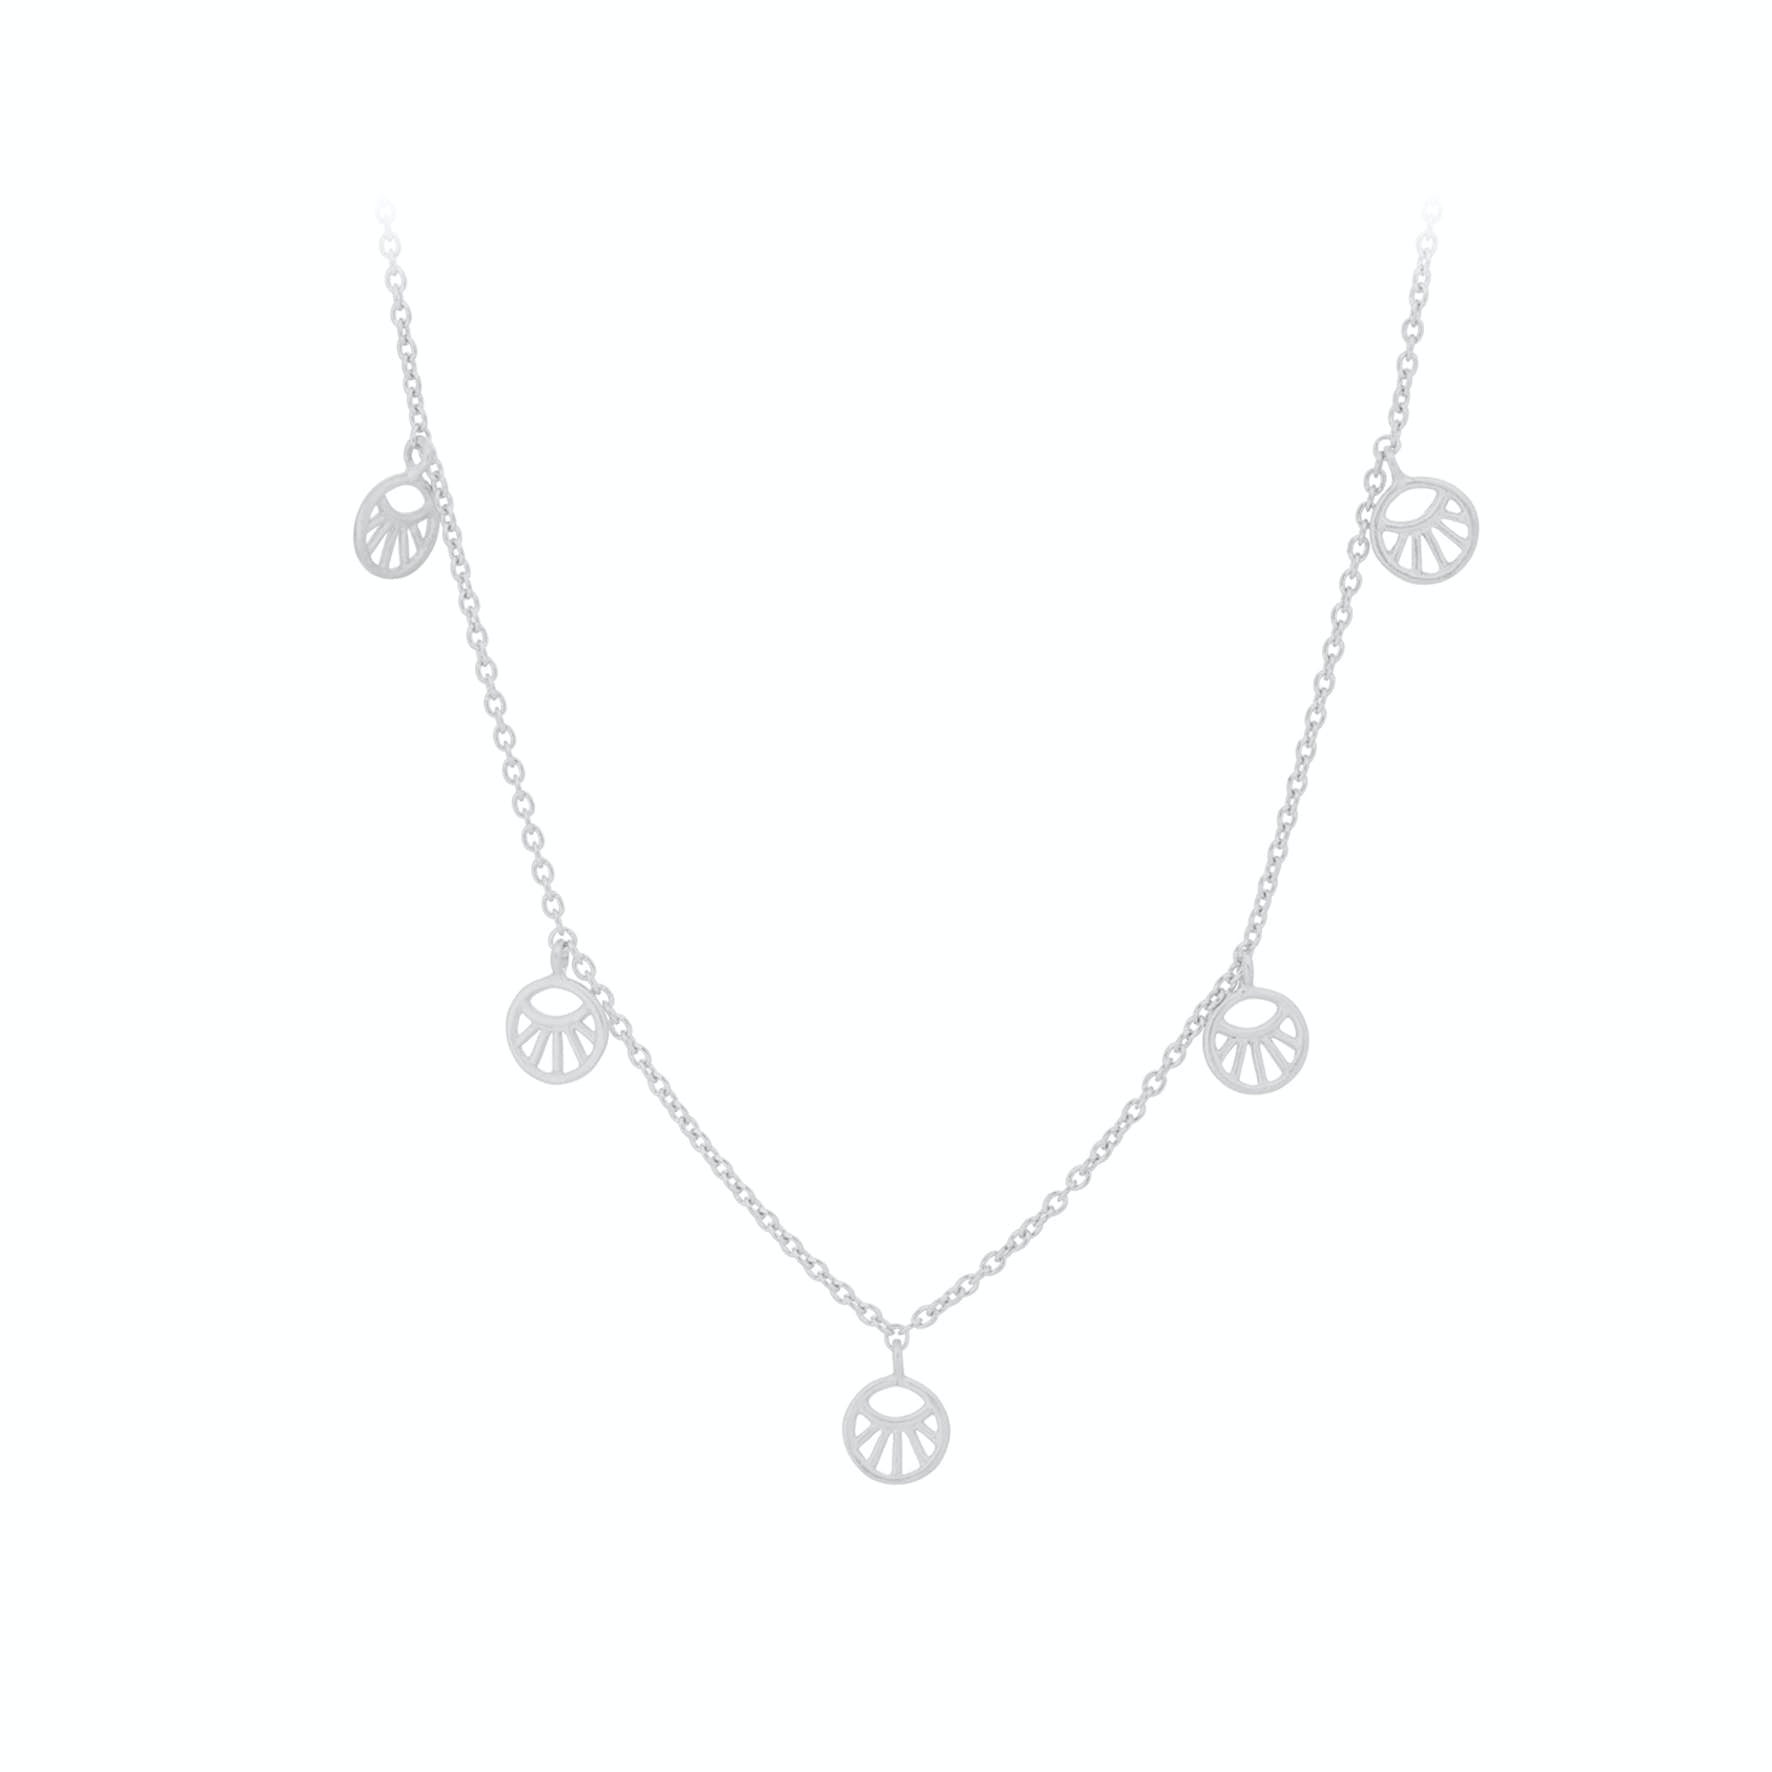 Mini Daylight Necklace from Pernille Corydon in Silver Sterling 925